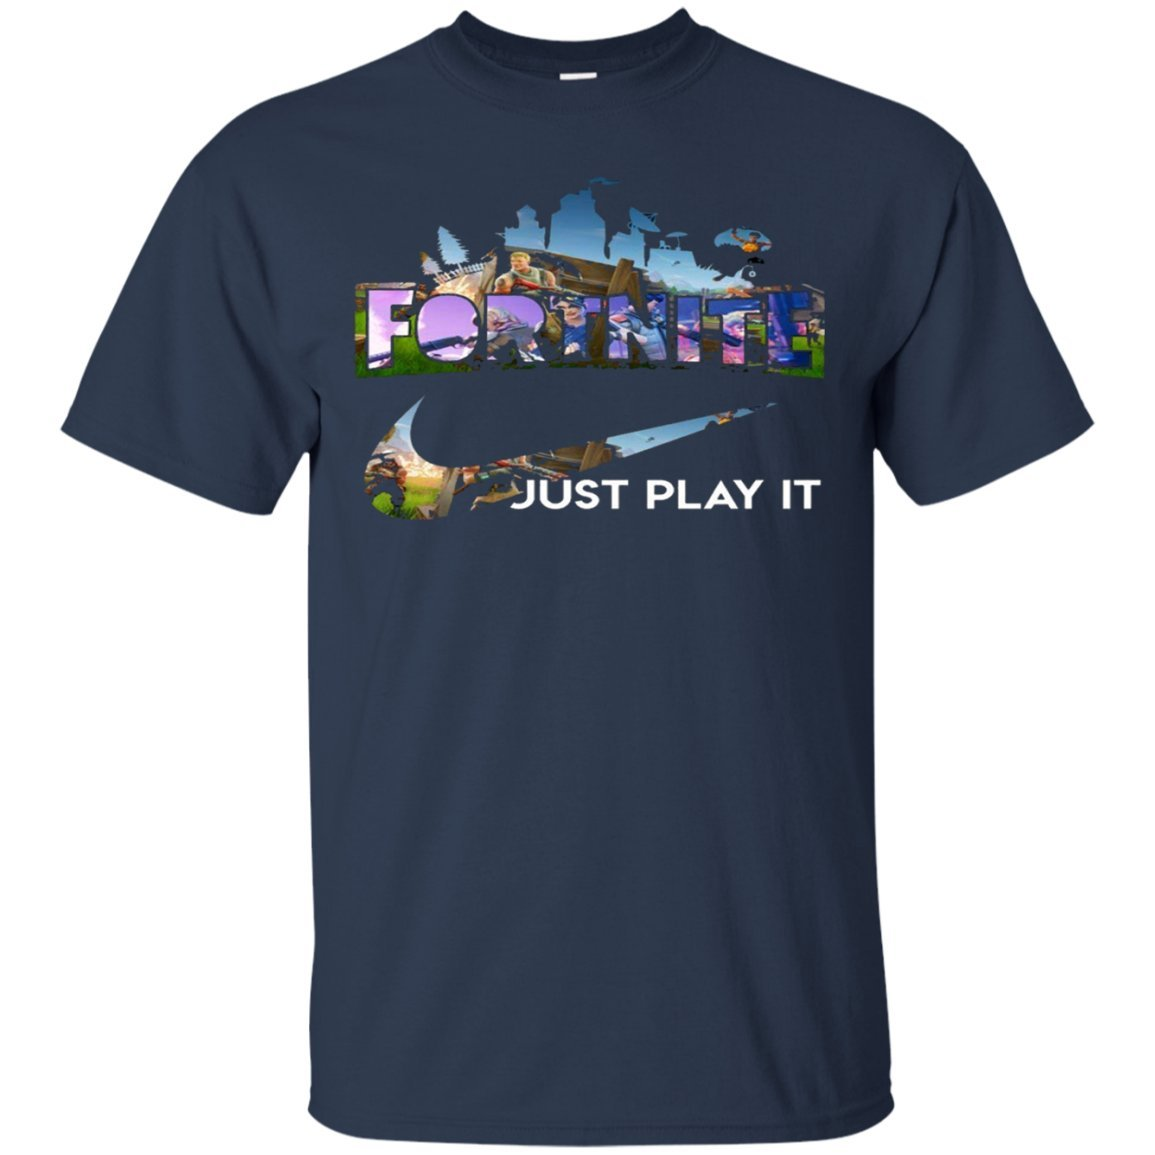 Teezoozoom Fortnite Burnout Heroes T Shirt Just Play It